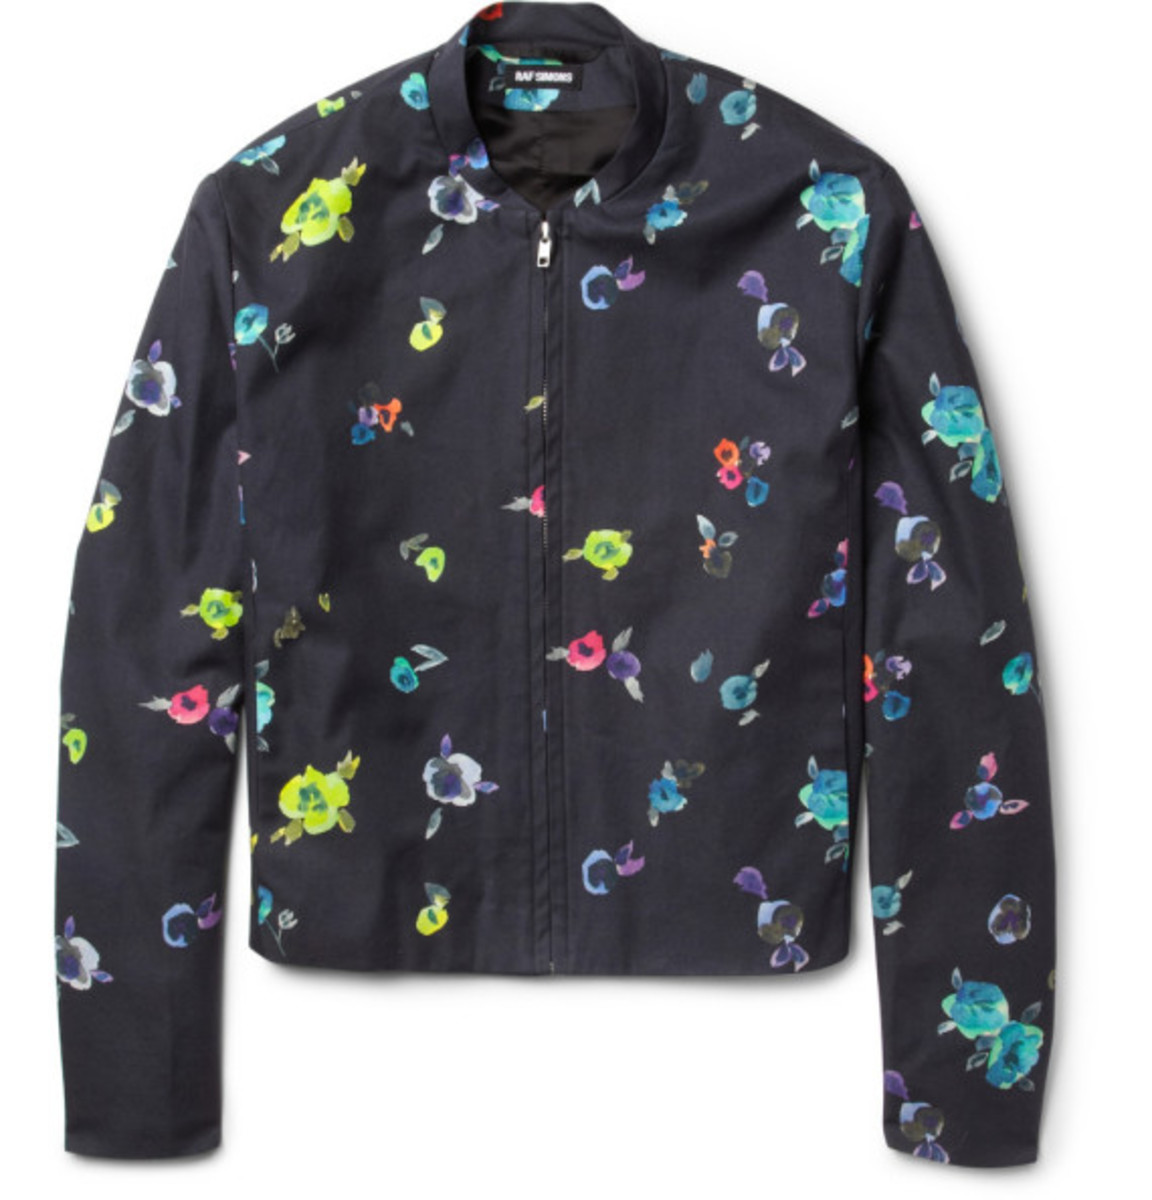 raf-simons-mr-porter-exclusive-flower-print-cotton-twill-bomber-jacket-01